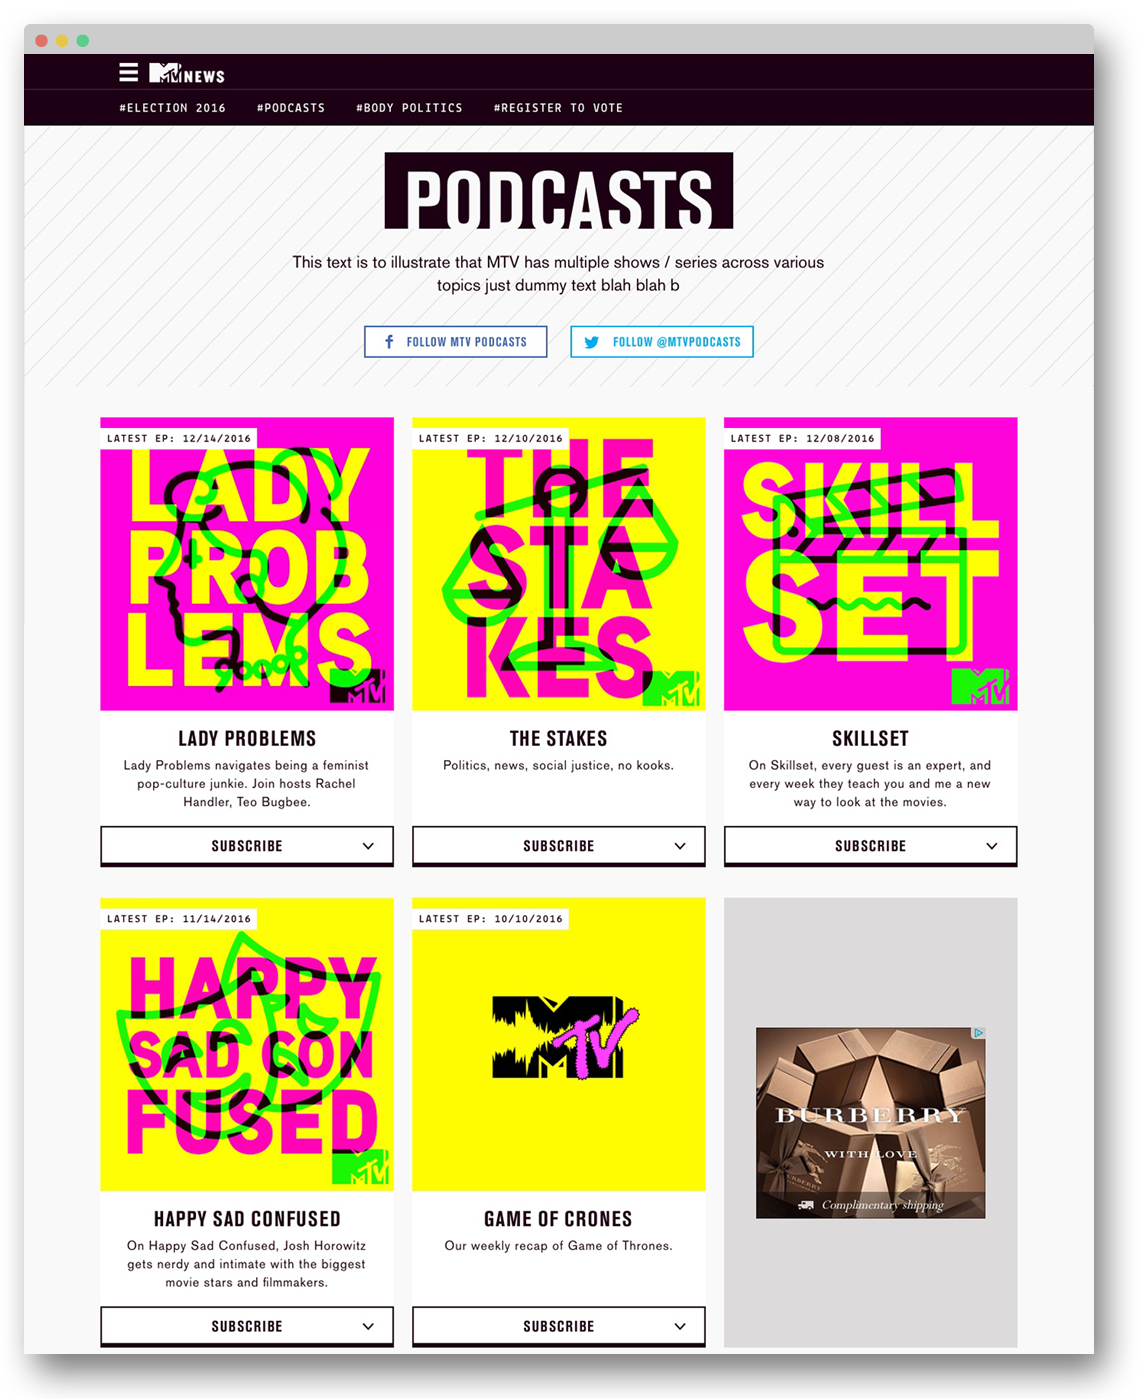 MTV-news-podcast-hub-desktop